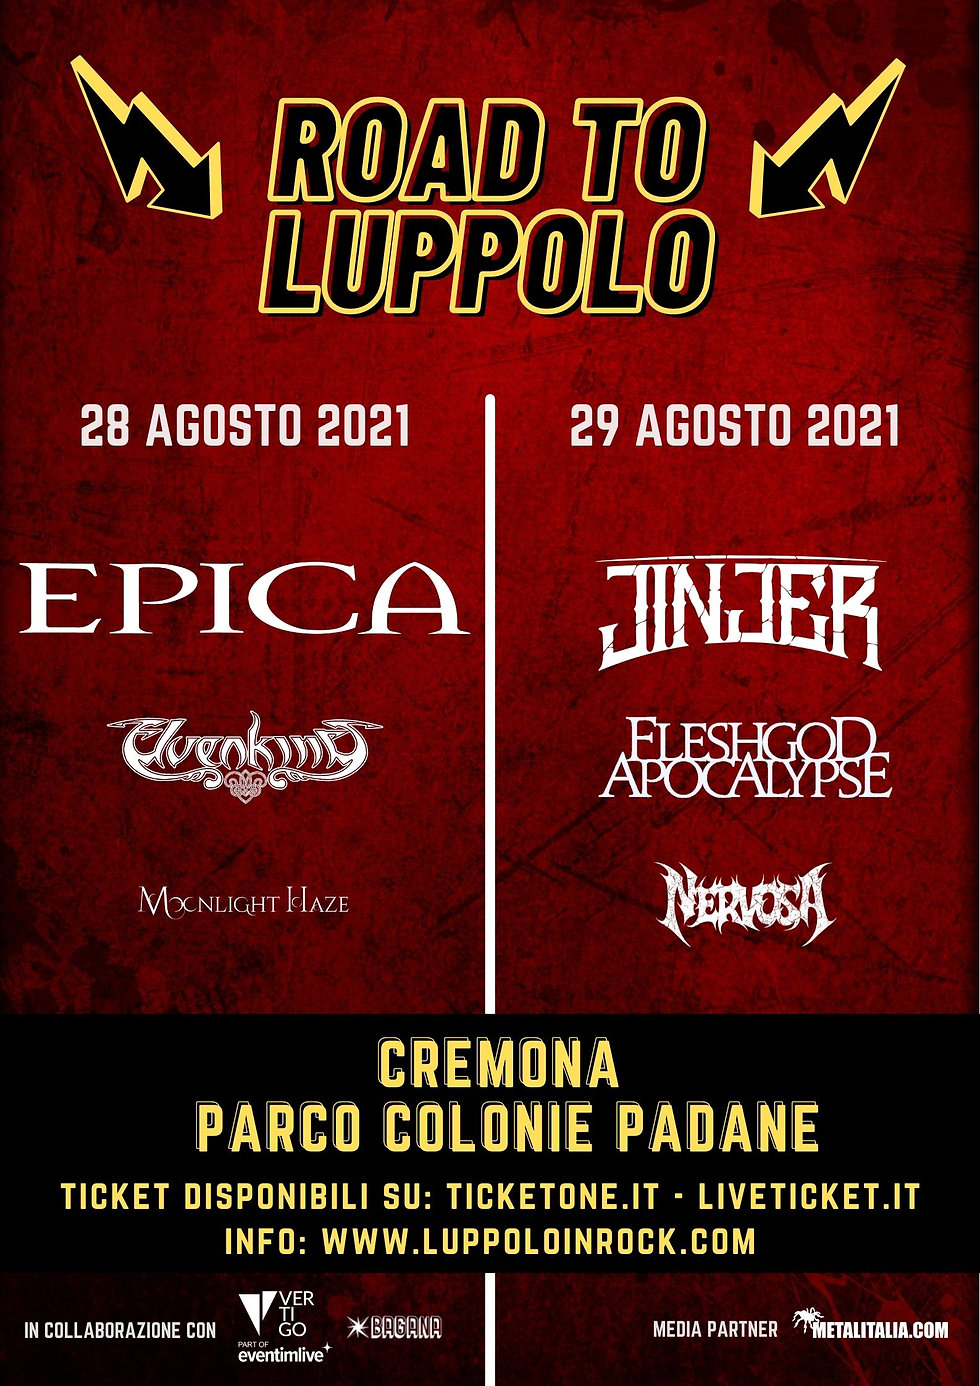 road to luppolo poster (1).jpg